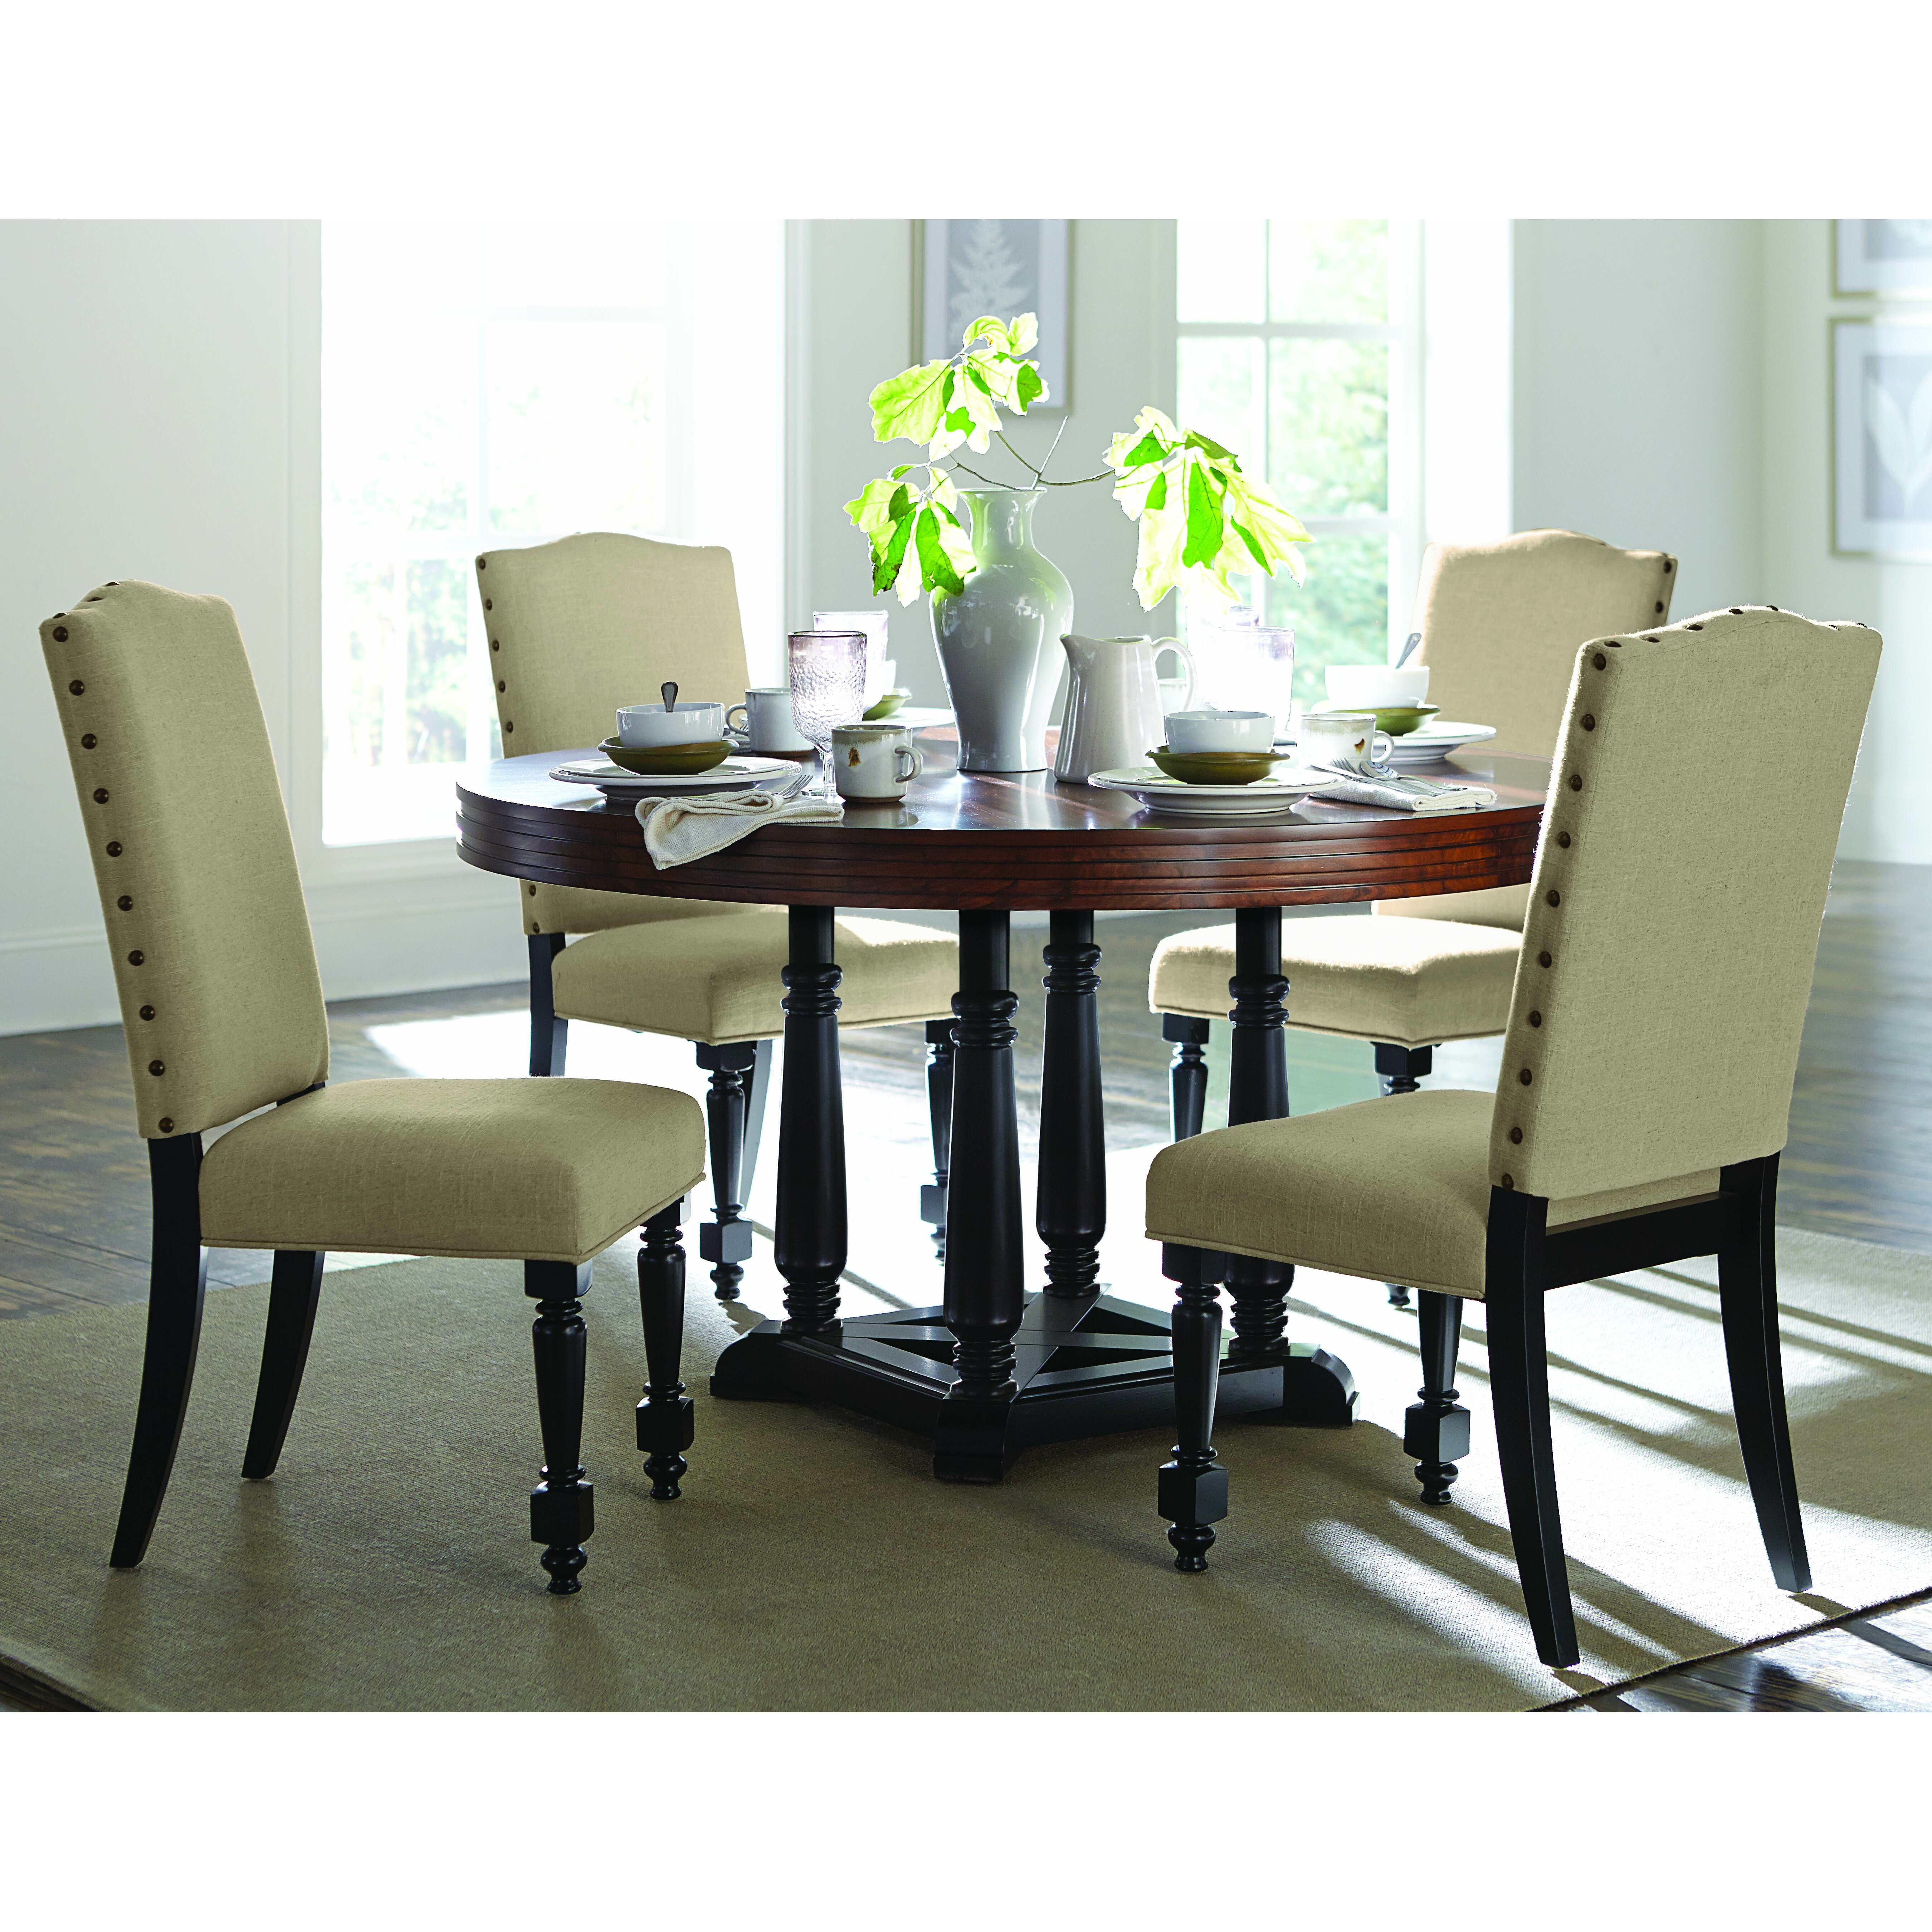 Homelegance 5 Dining Set 187 Homelegance Hahn 5 Marble Top  :  from 45.77.210.35 size 5400 x 5400 jpeg 4133kB